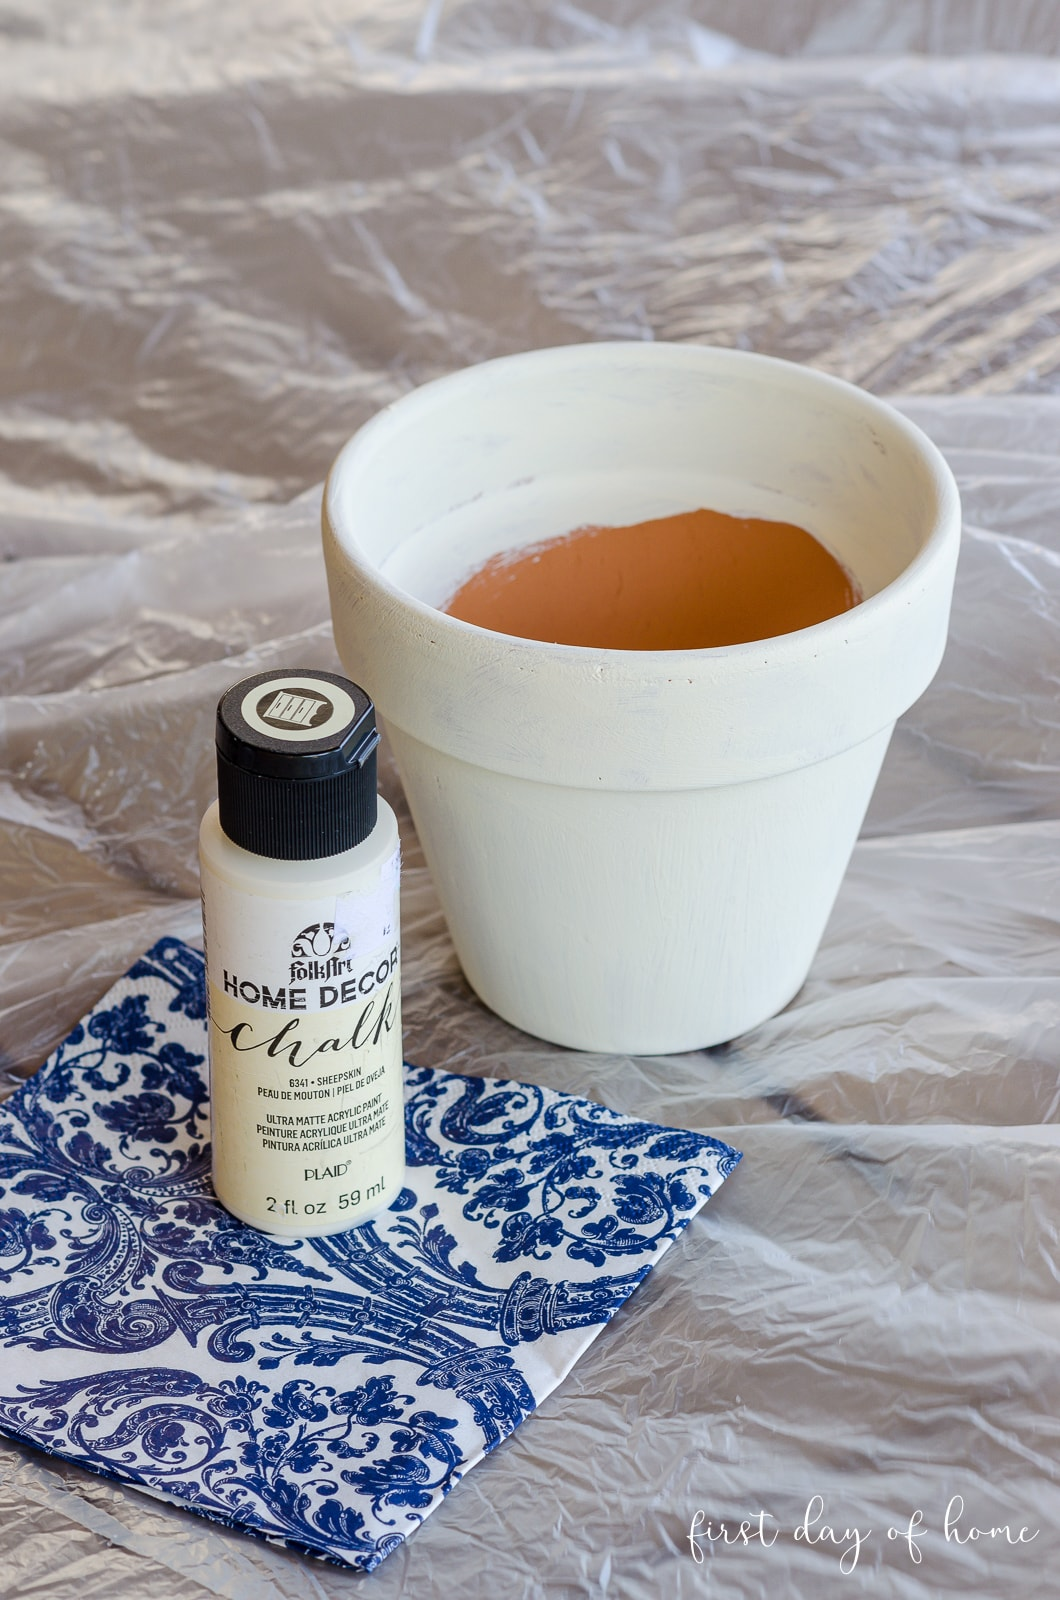 Chalk paint used for painting a small clay pot